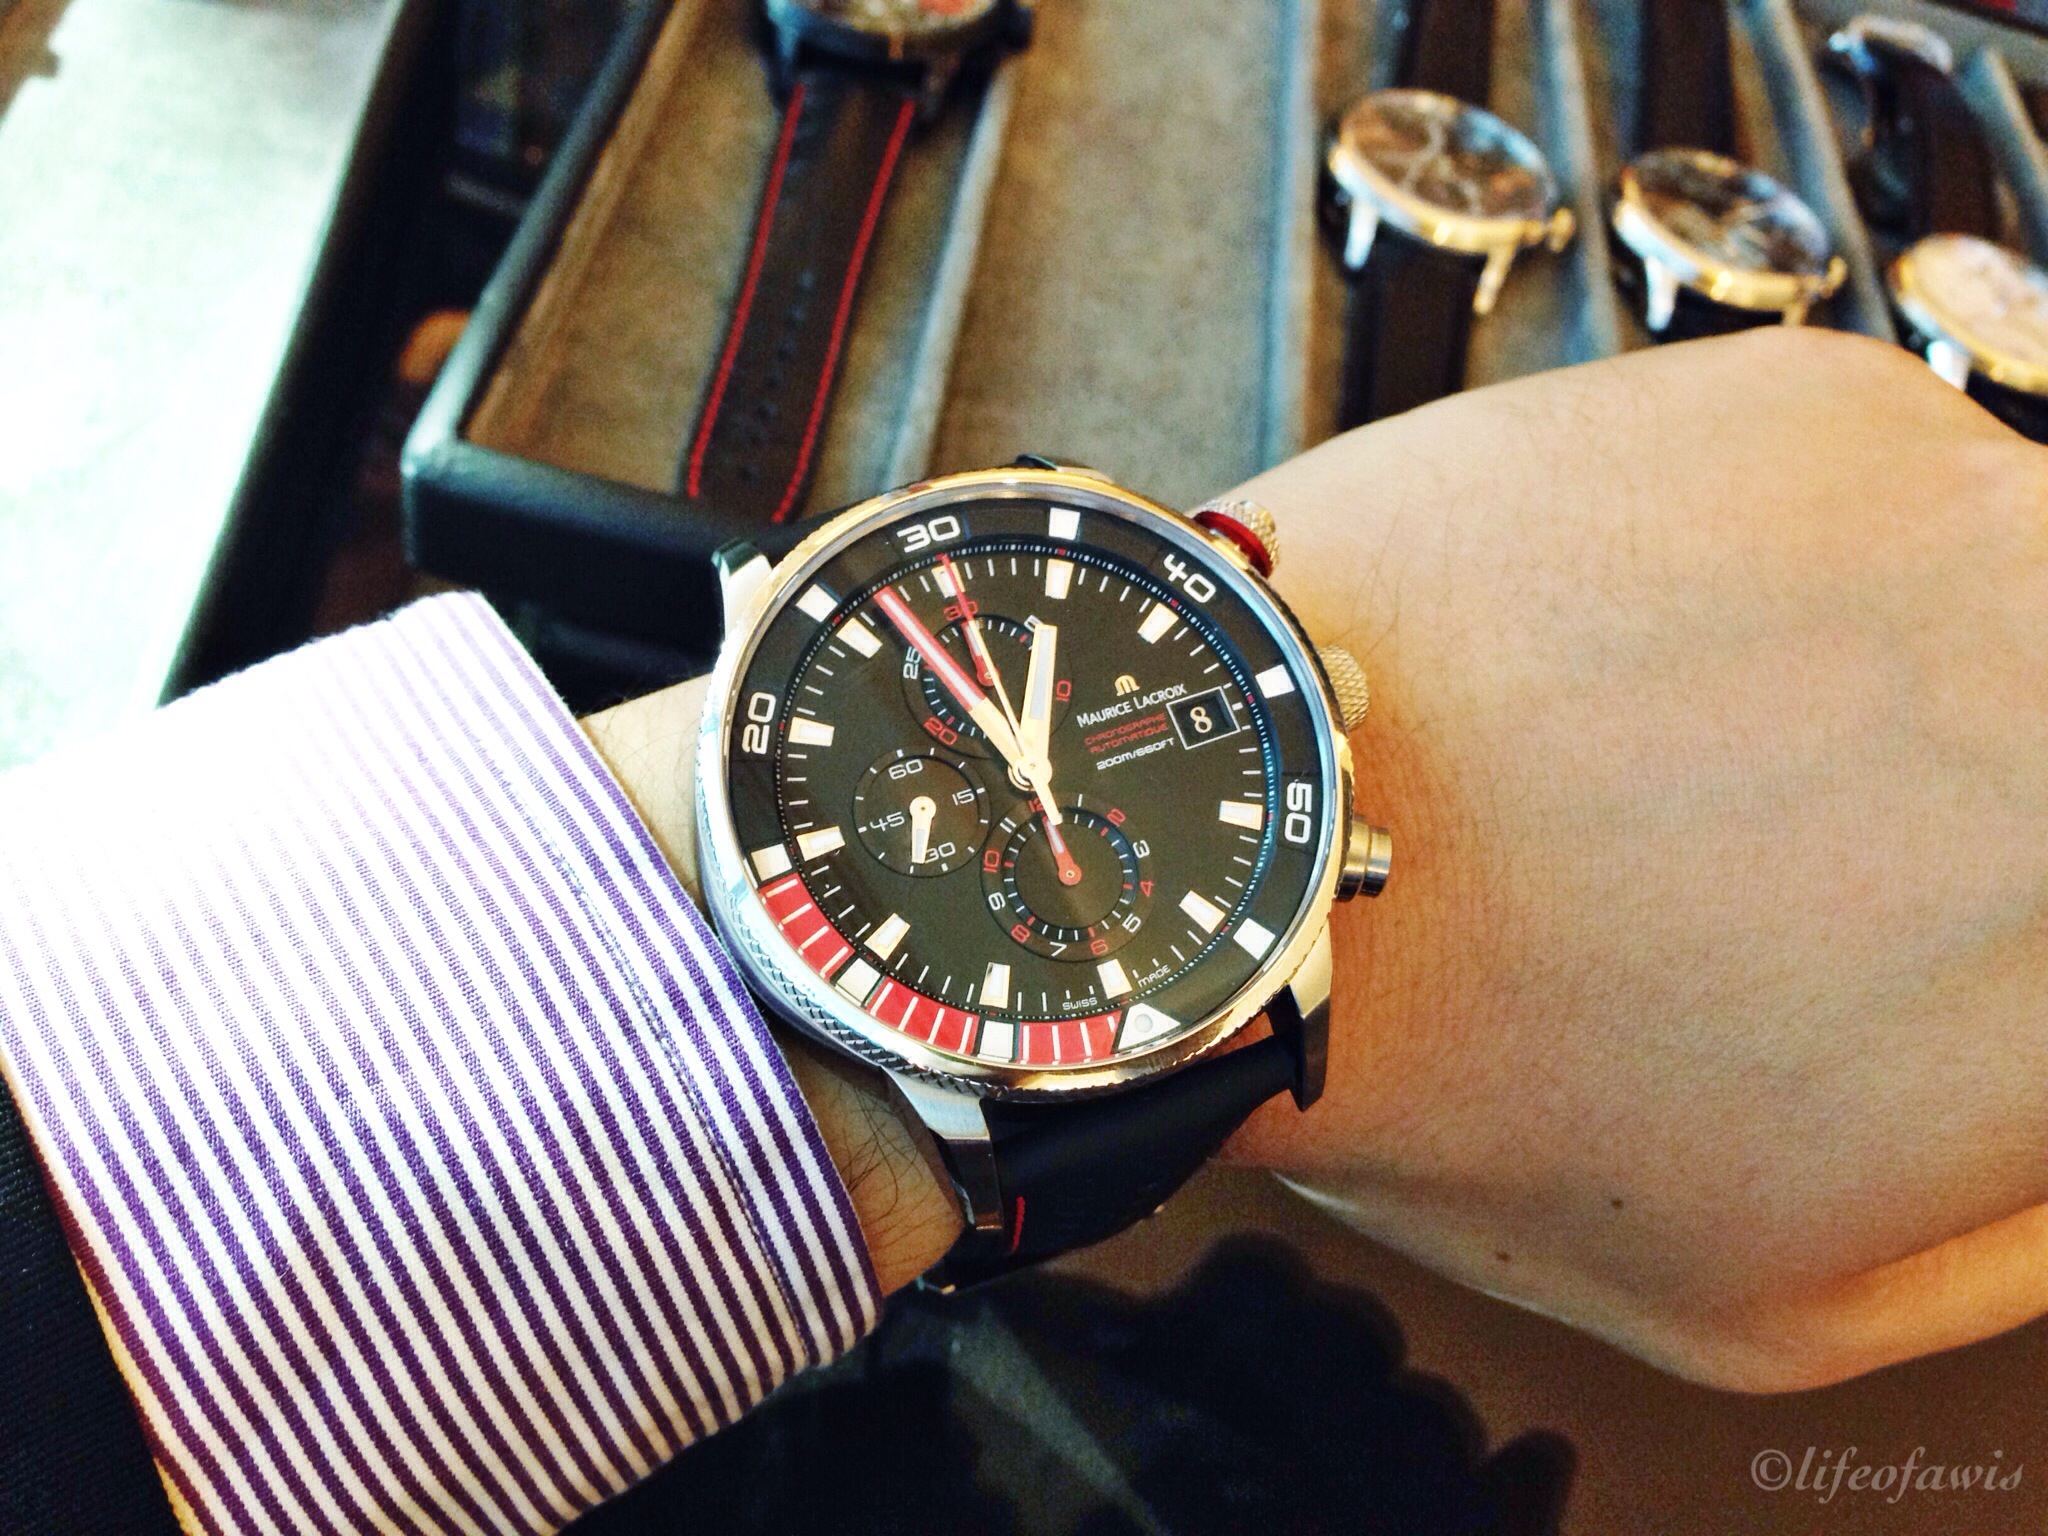 Pontos S Supercharged with red accents.